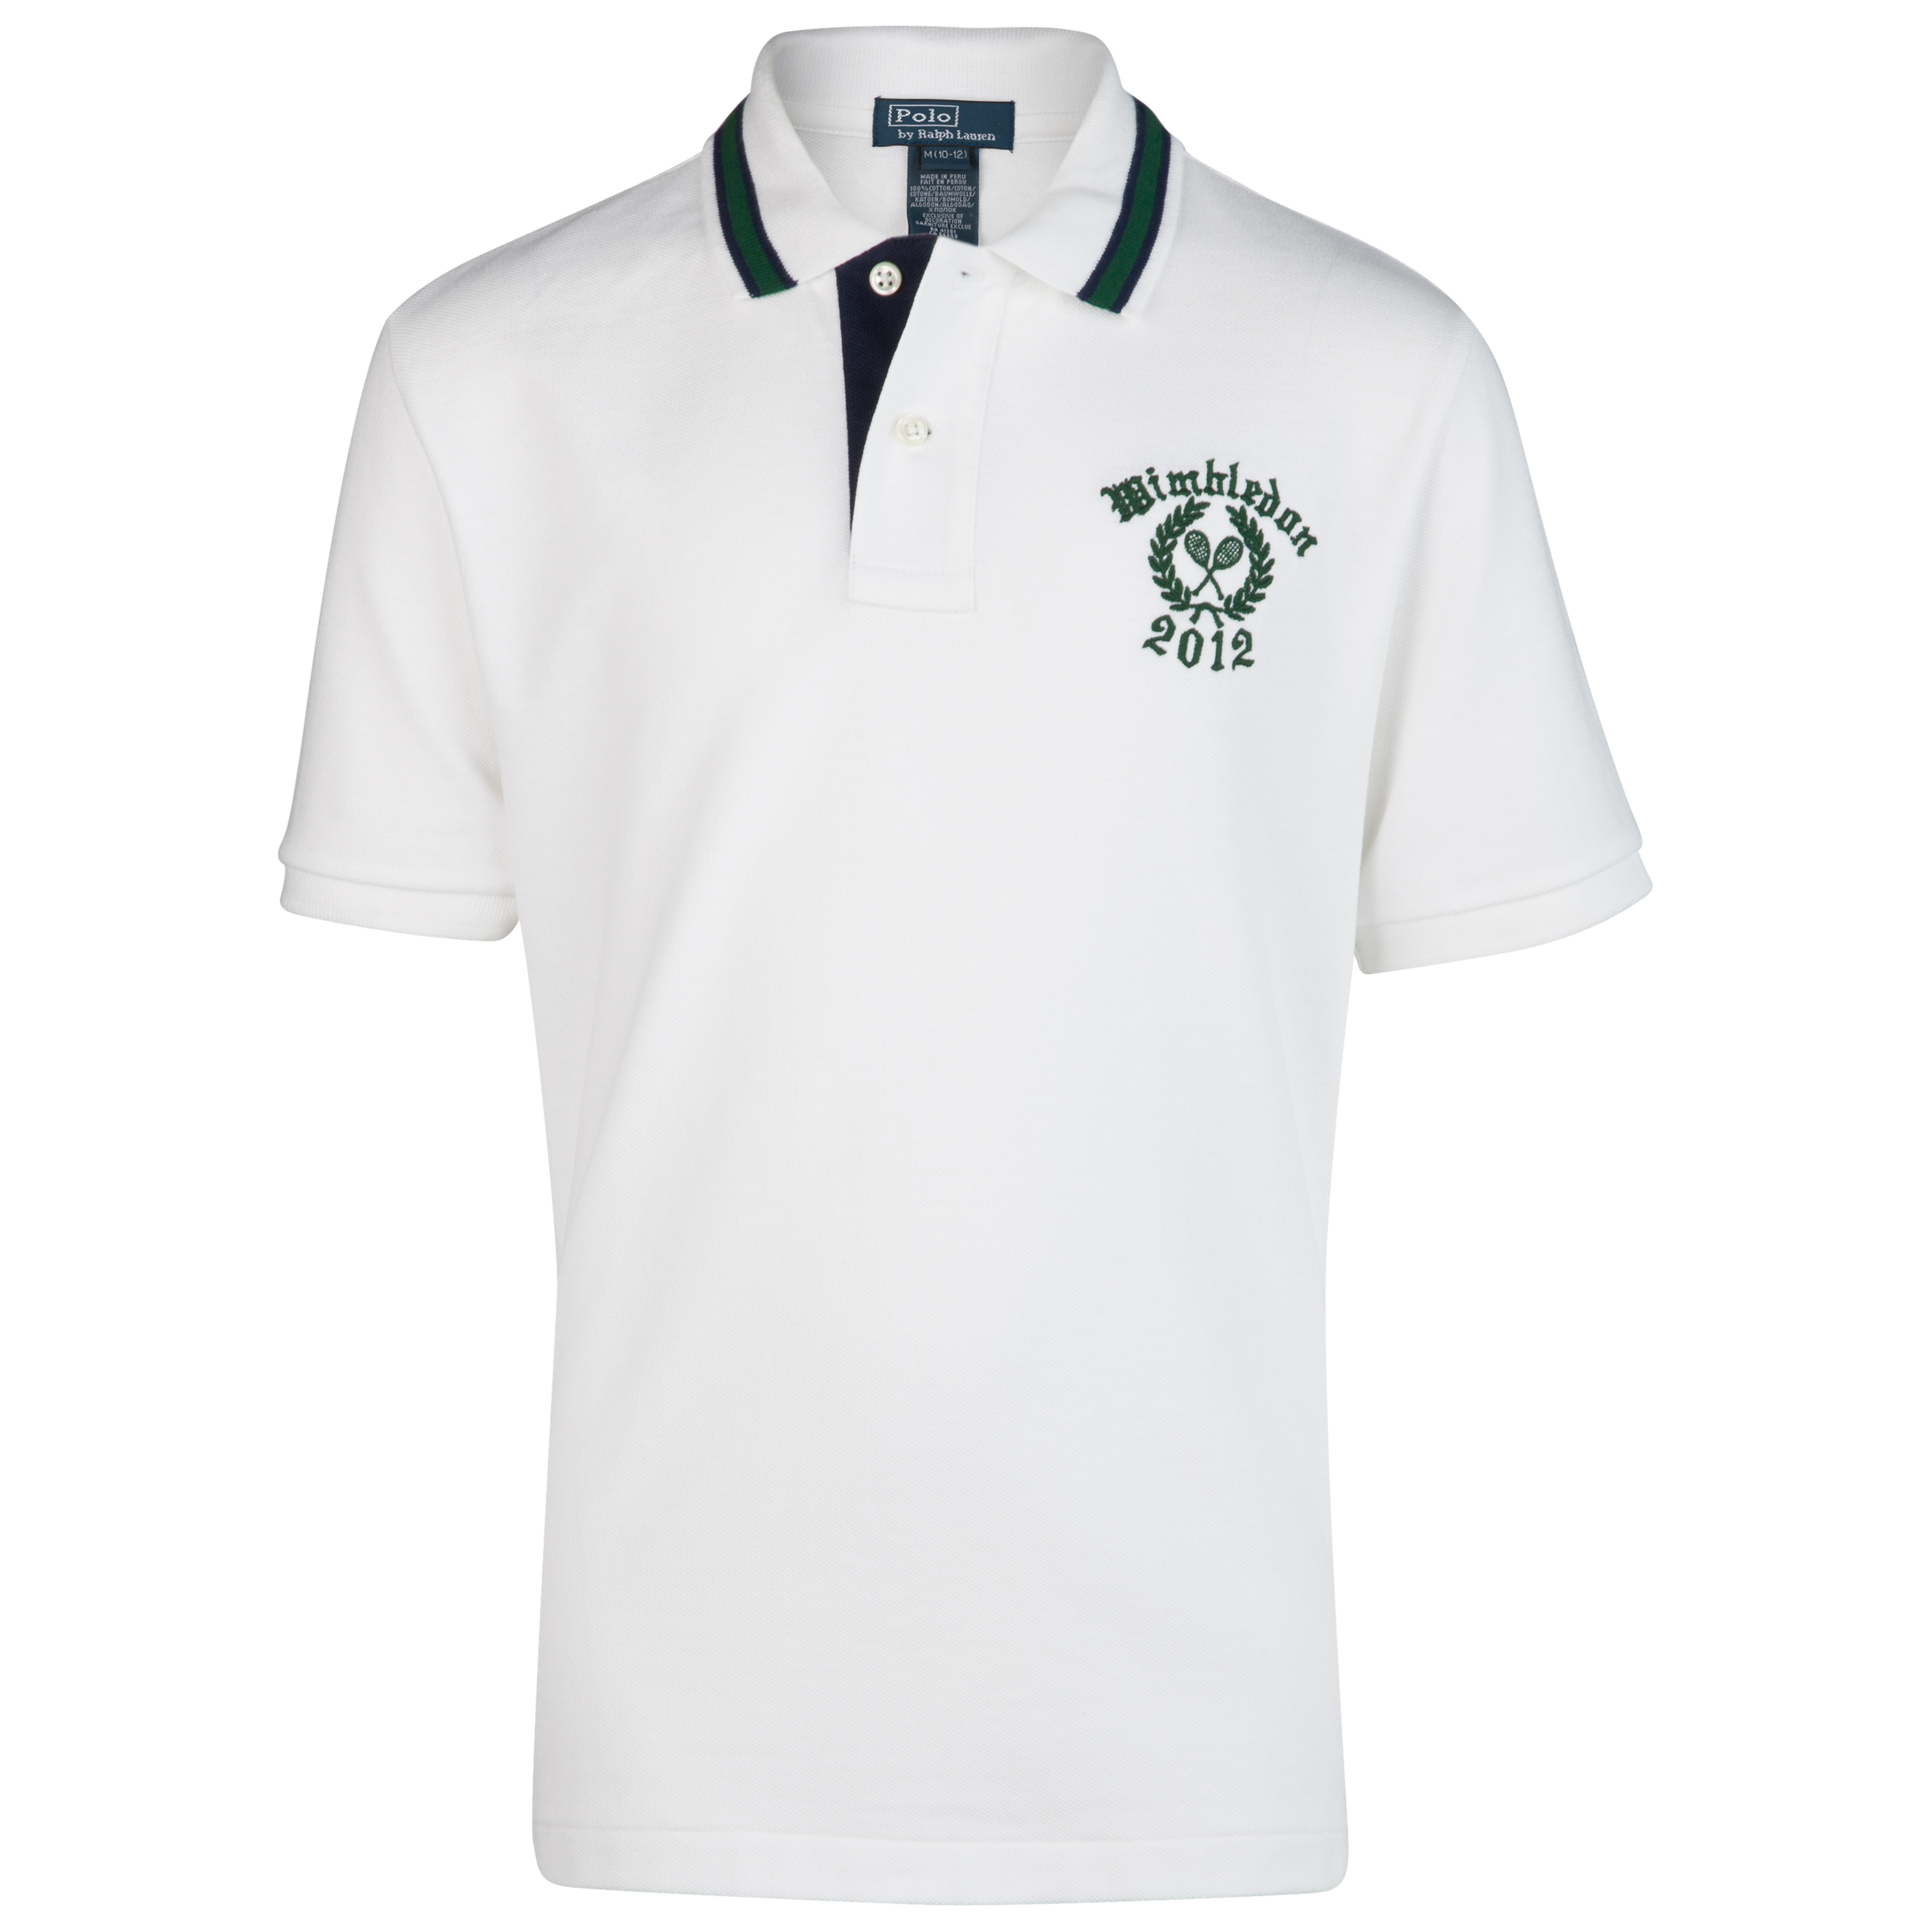 Polo Ralph Lauren Wimbledon Big PP Mesh Polo - Classic Oxford White - Boys